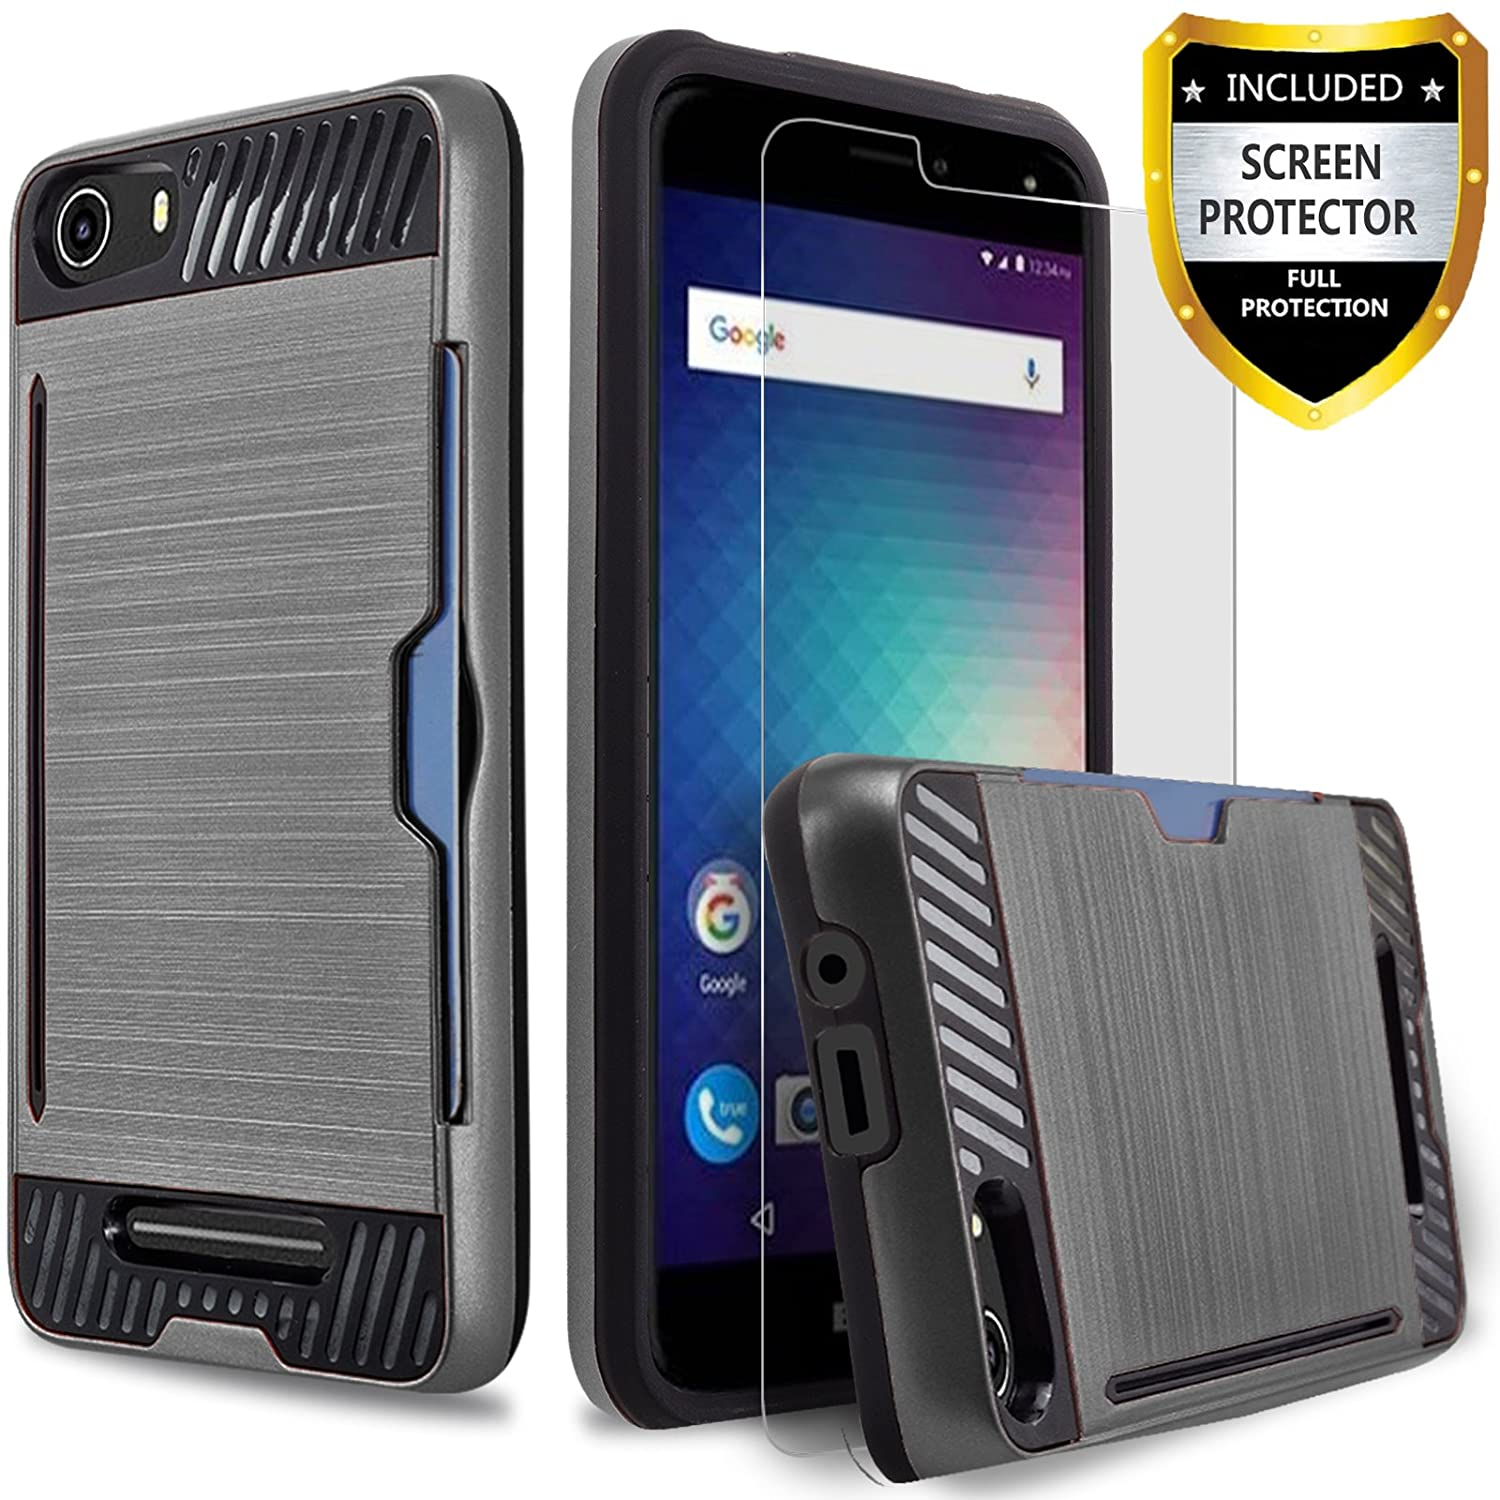 BLU Advance 5.0 Case, [Not Fit BLU Advance 5.0 HD] Circlemalls 2-Piece Style Hybrid Shockproof Hard Case Cover With [Premium Screen Protector] And Touch Screen Pen (Black)